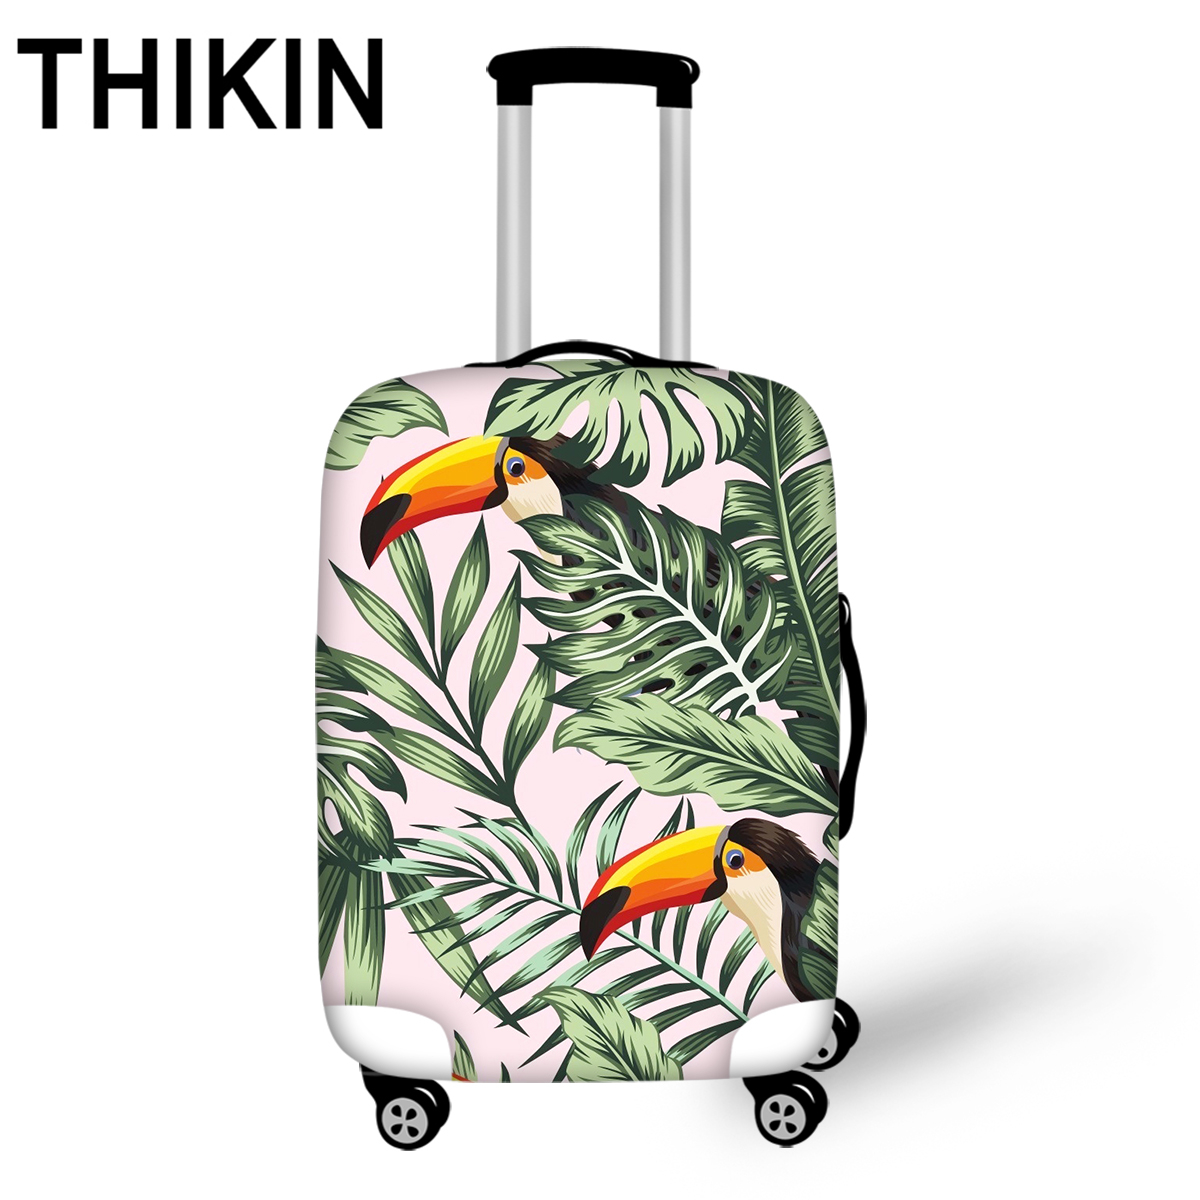 THIKIN Palm Tree Leaf Print Luggage Covers Popular Cartoon Toucan Accessory Bags Travel Luggage Protector Cover Suitcases Covers